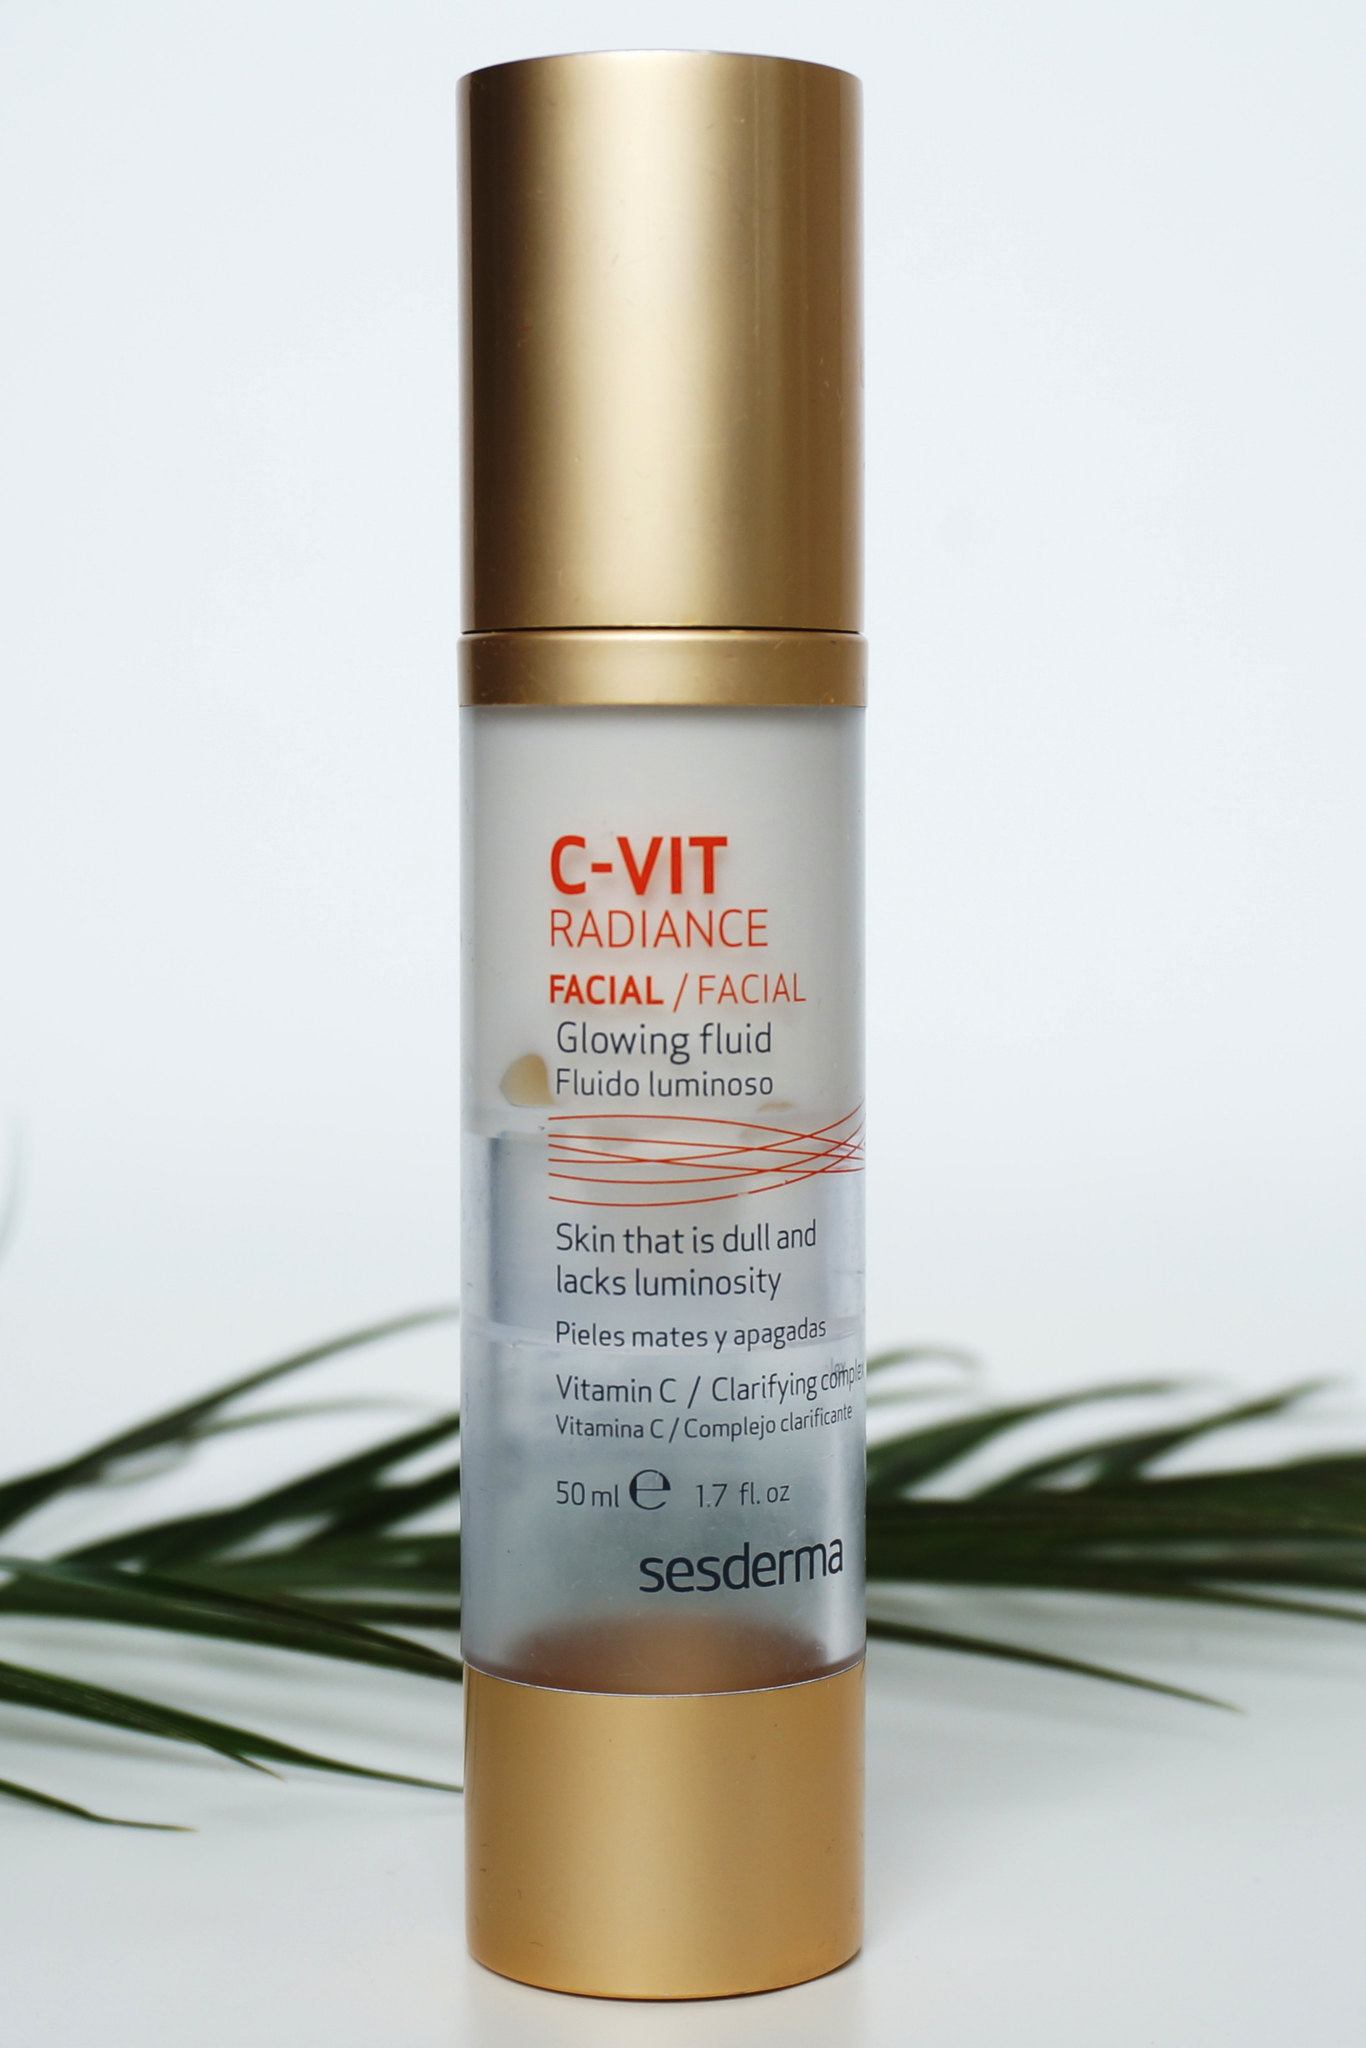 c-vit-radiance-facial-glowing-fluid-sesderma-vitamin-c